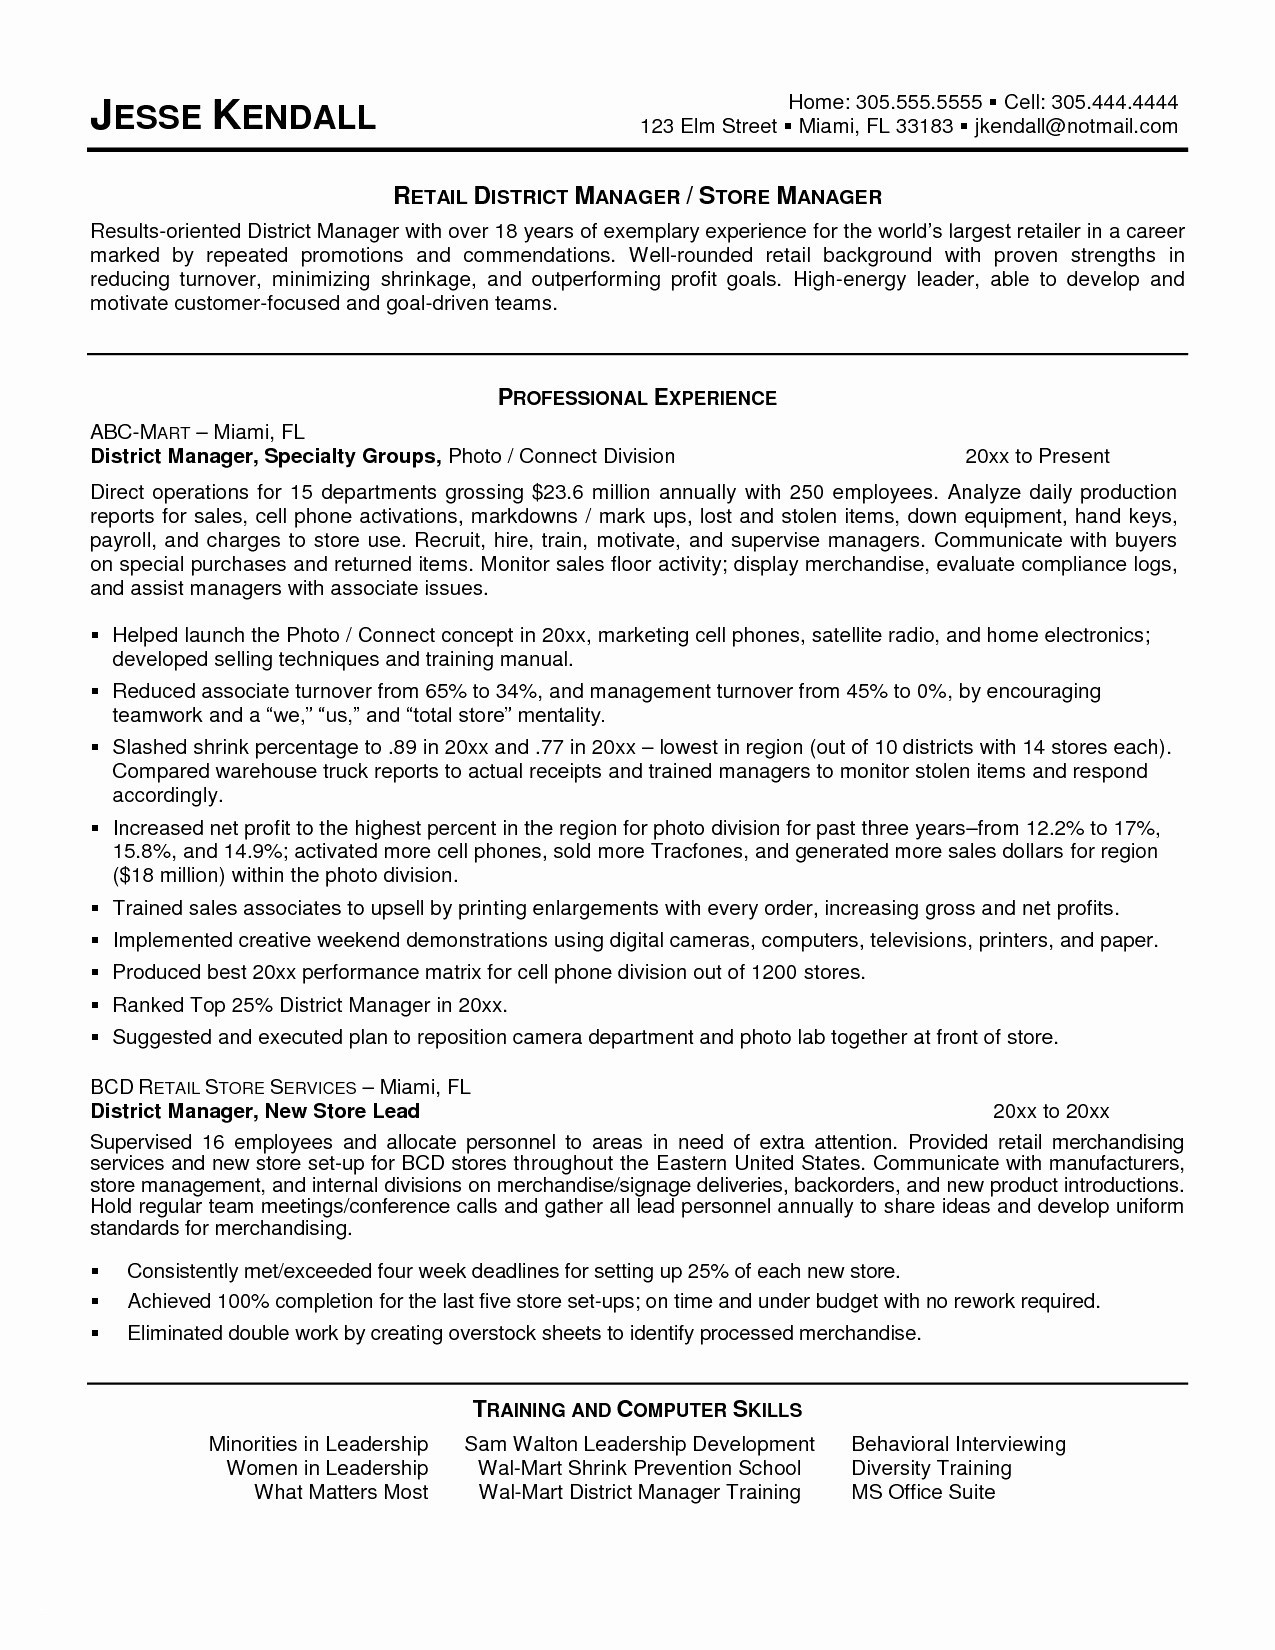 Manager Resume Template Word - Cv Templates Free Download Word Document Resume Template Word Doc